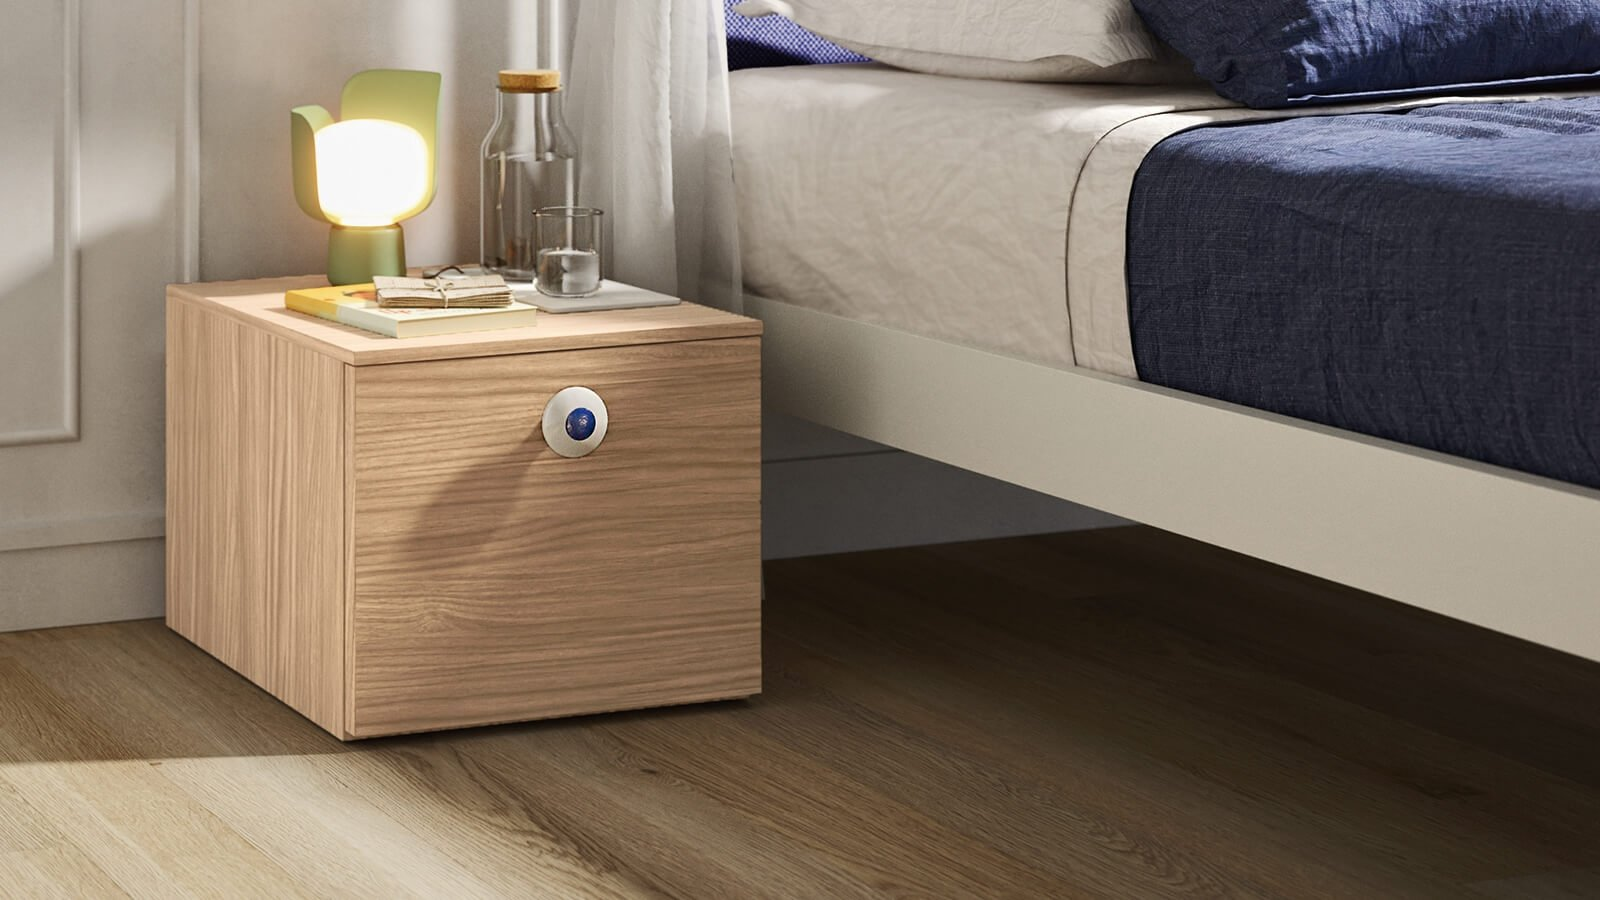 Base bedside table